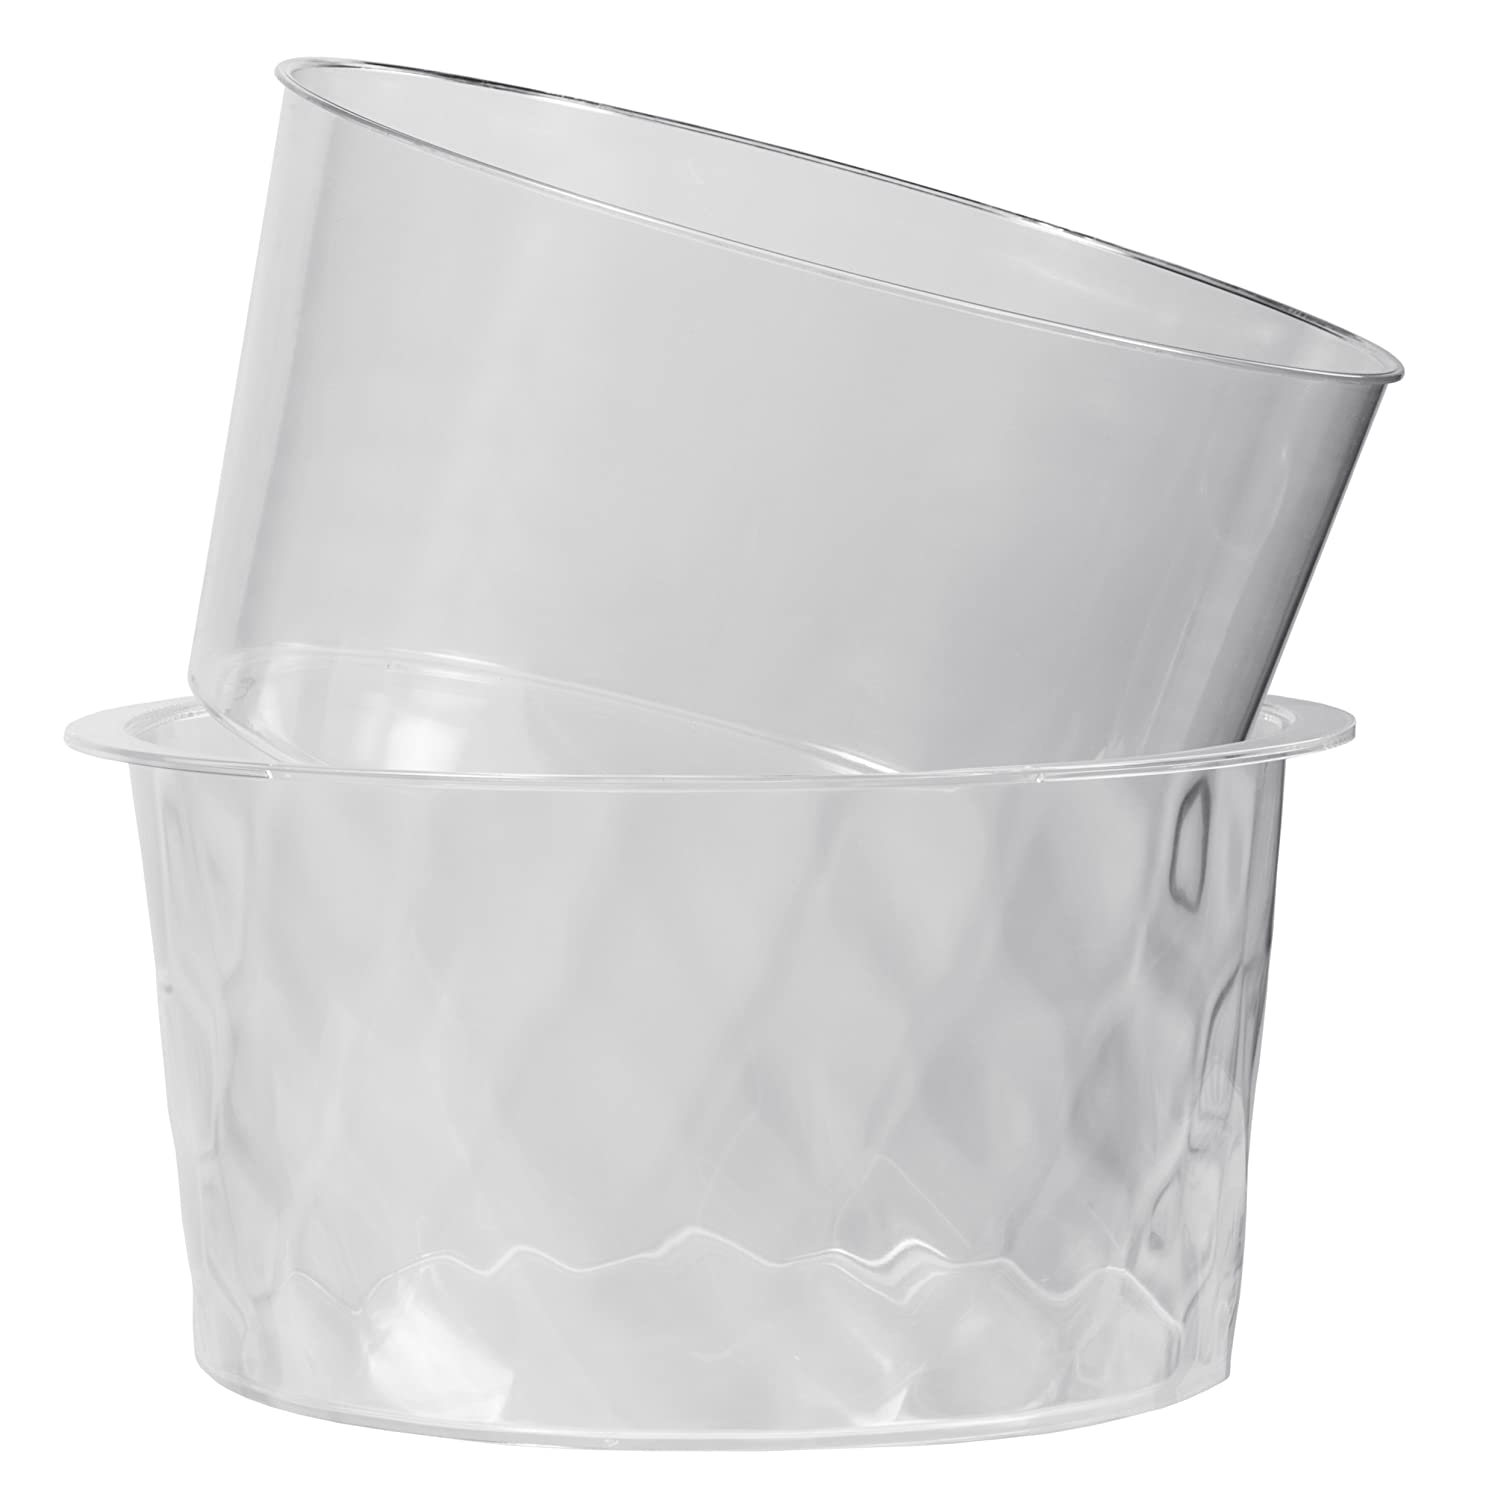 Creative Bath 6-Gallon Insulated Tub INS-TUBCLR